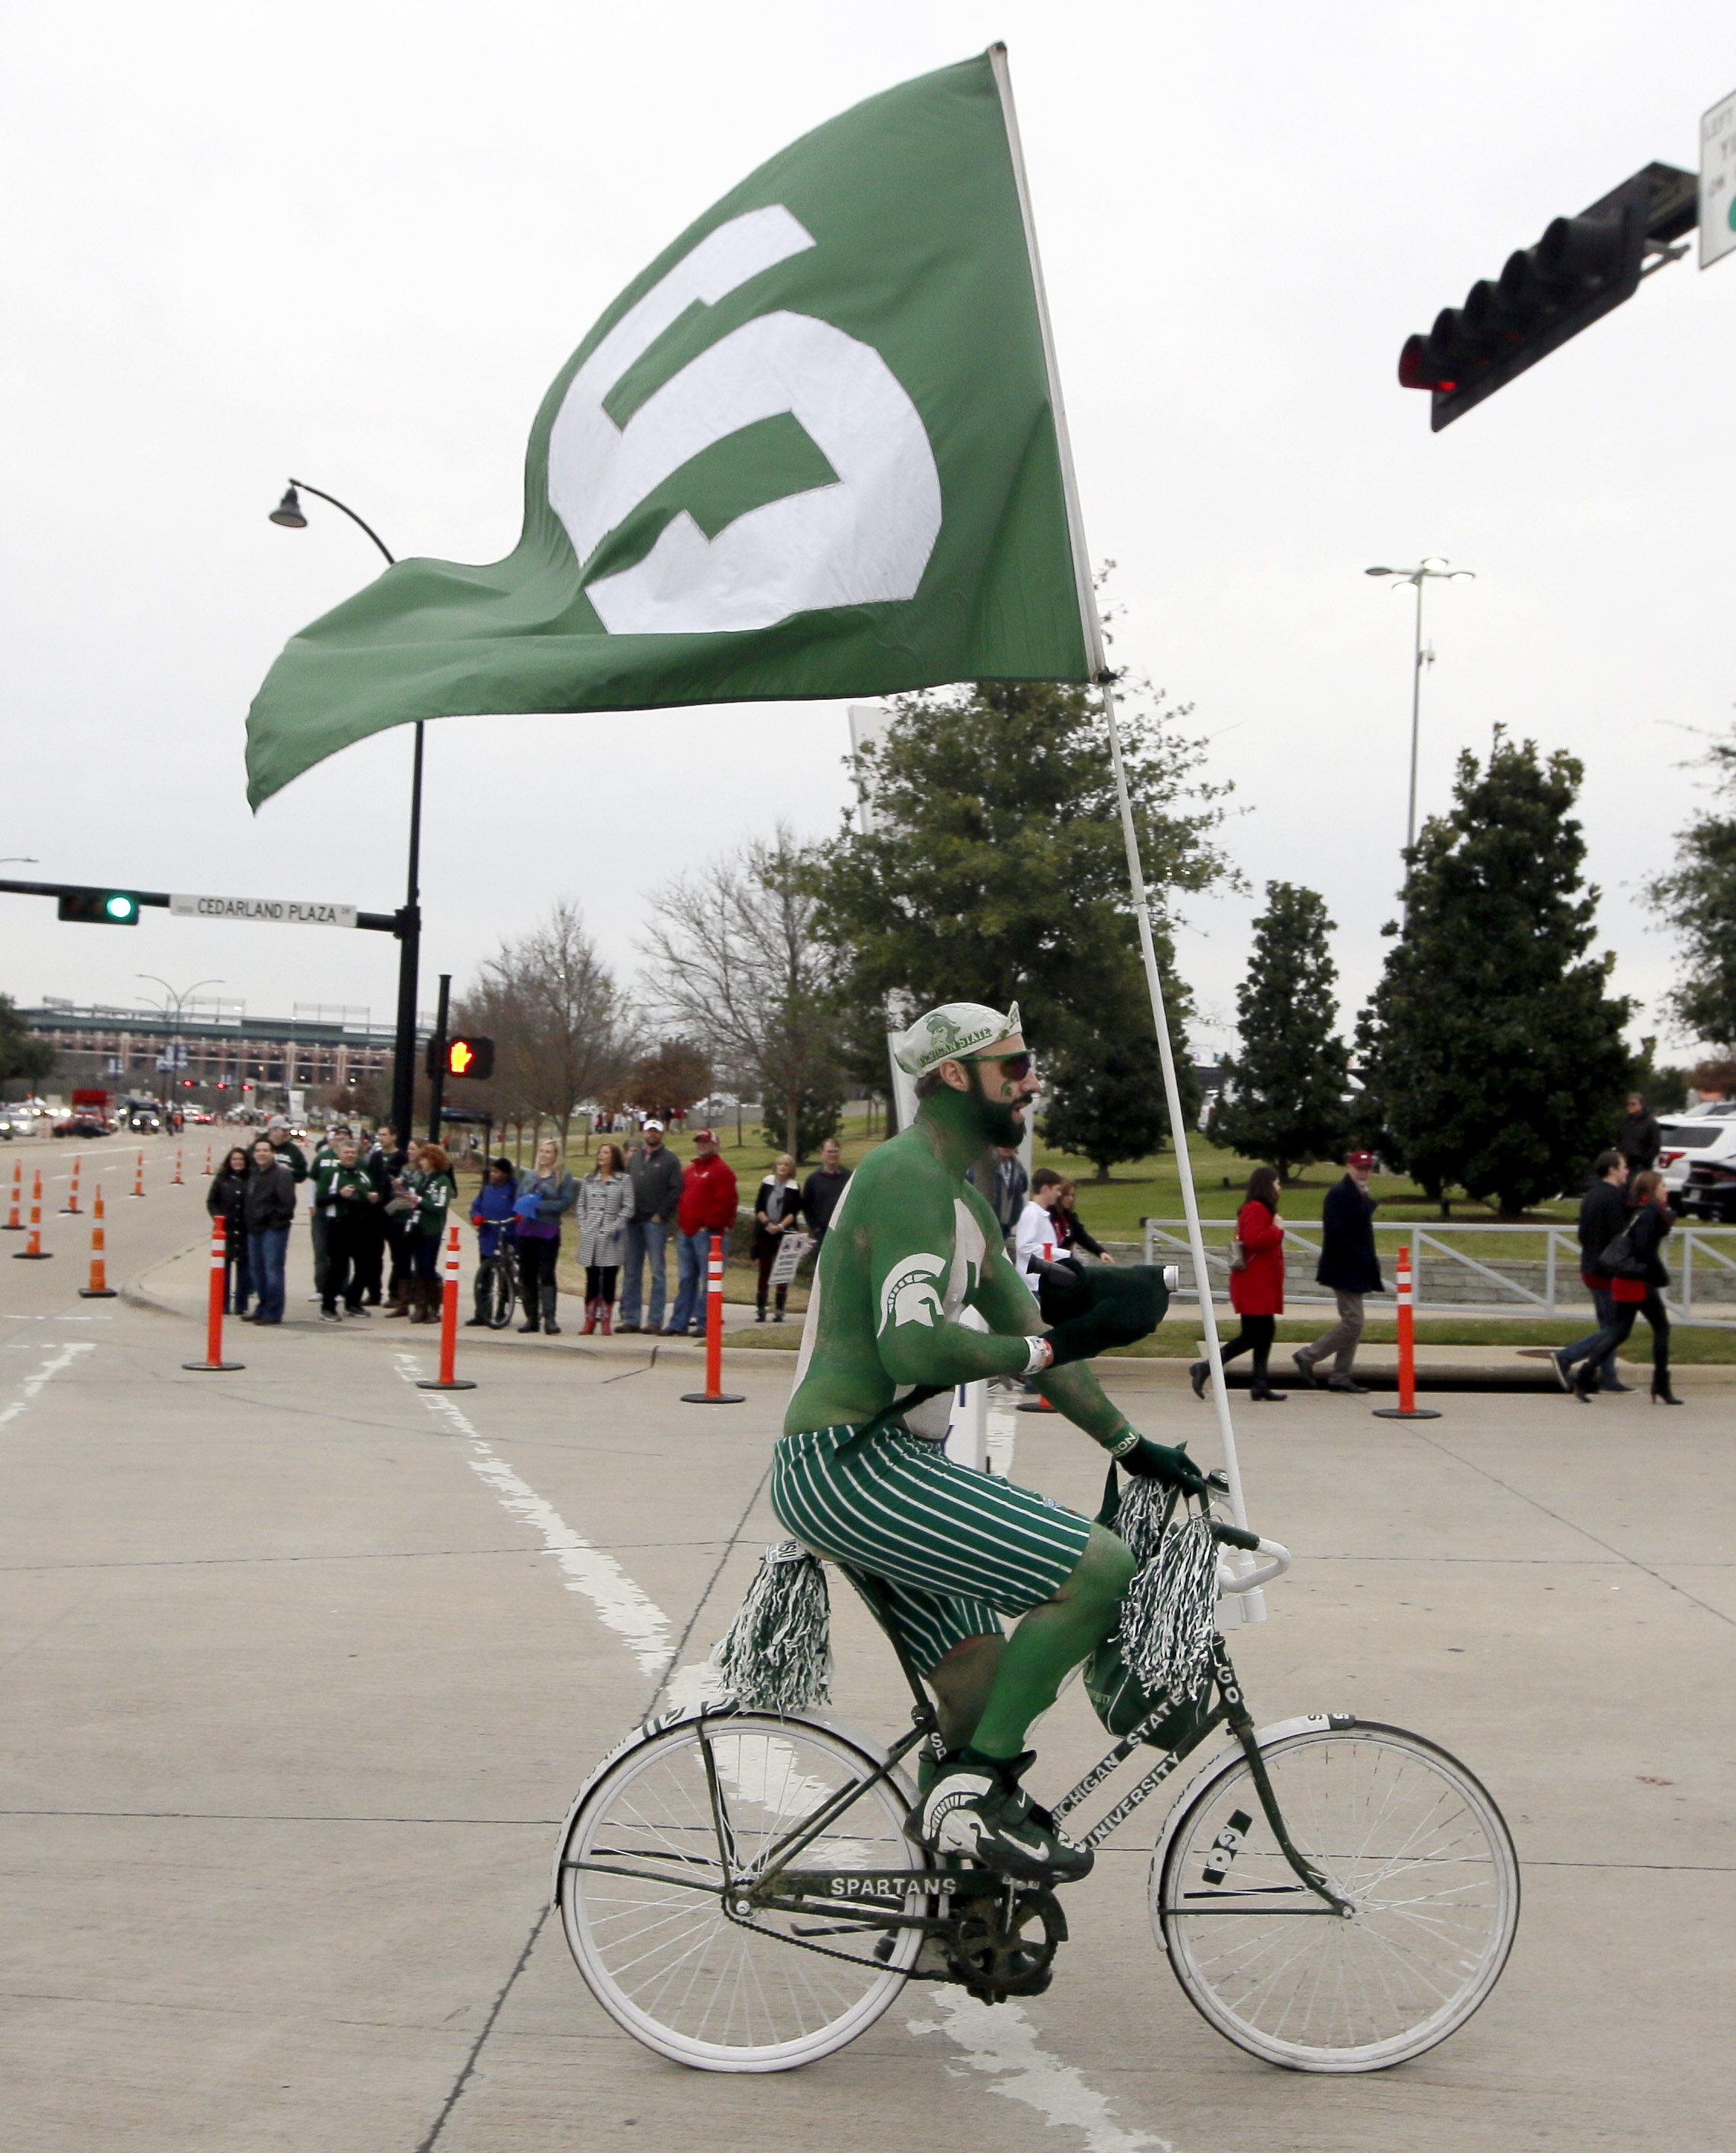 A Michigan State fan rides around AT&T Stadium before the Cotton Bowl NCAA college football semifinal playoff game against Alabama, Thursday, Dec. 31, 2015, in Arlington, Texas. (AP Photo/LM Otero)